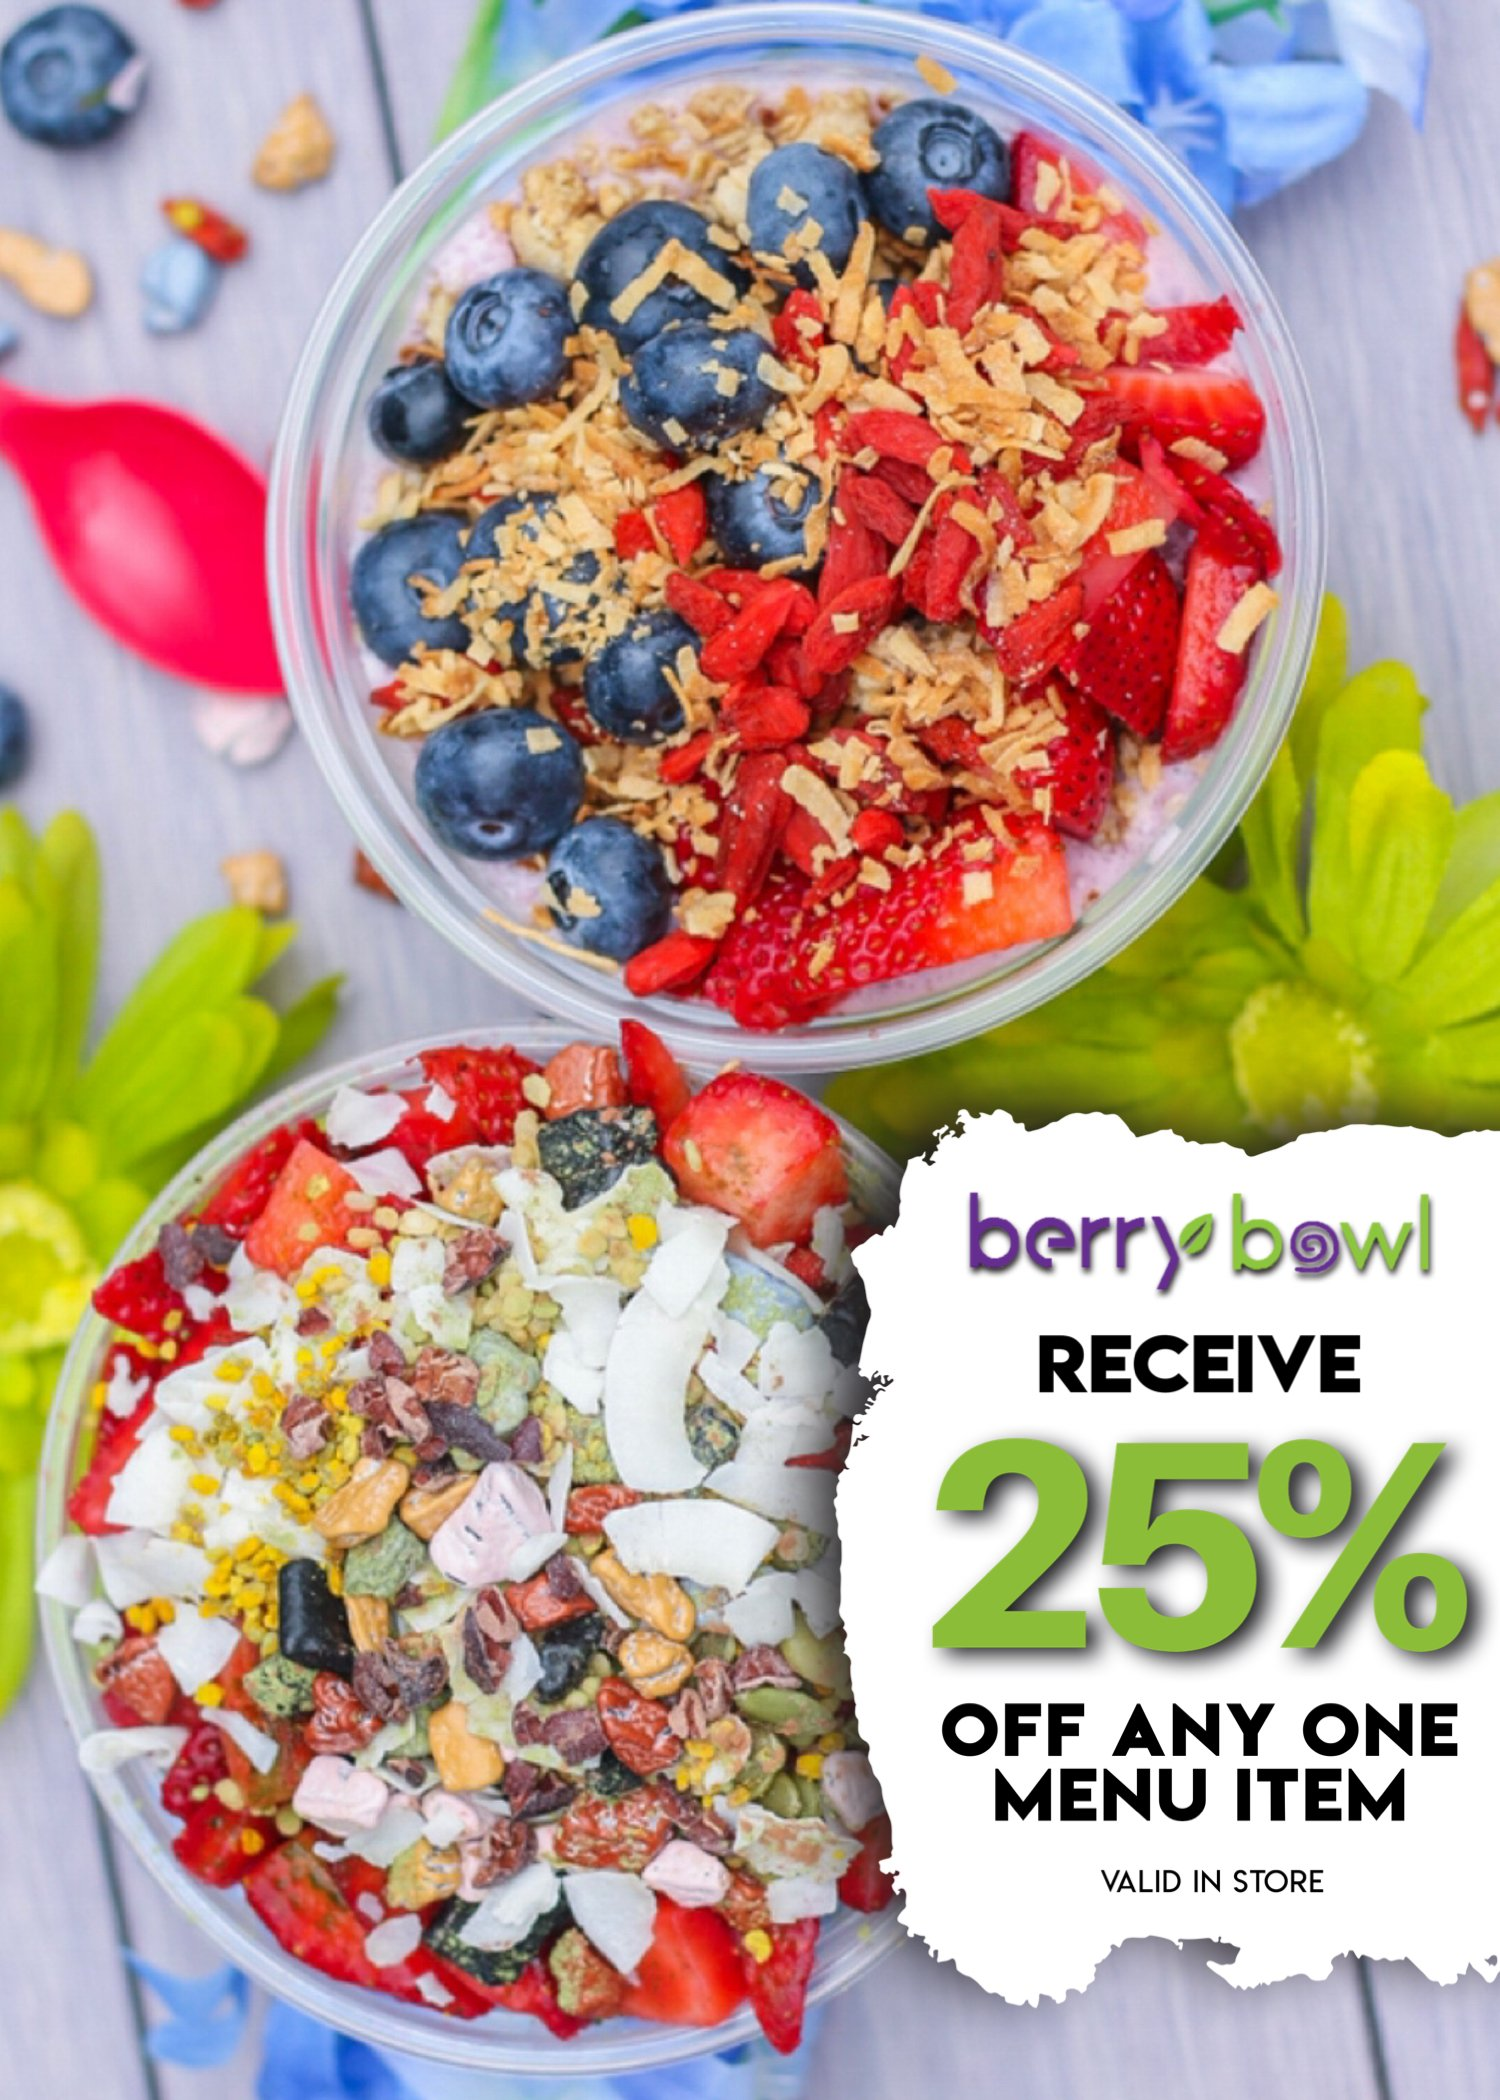 25 off berry bowl special new version